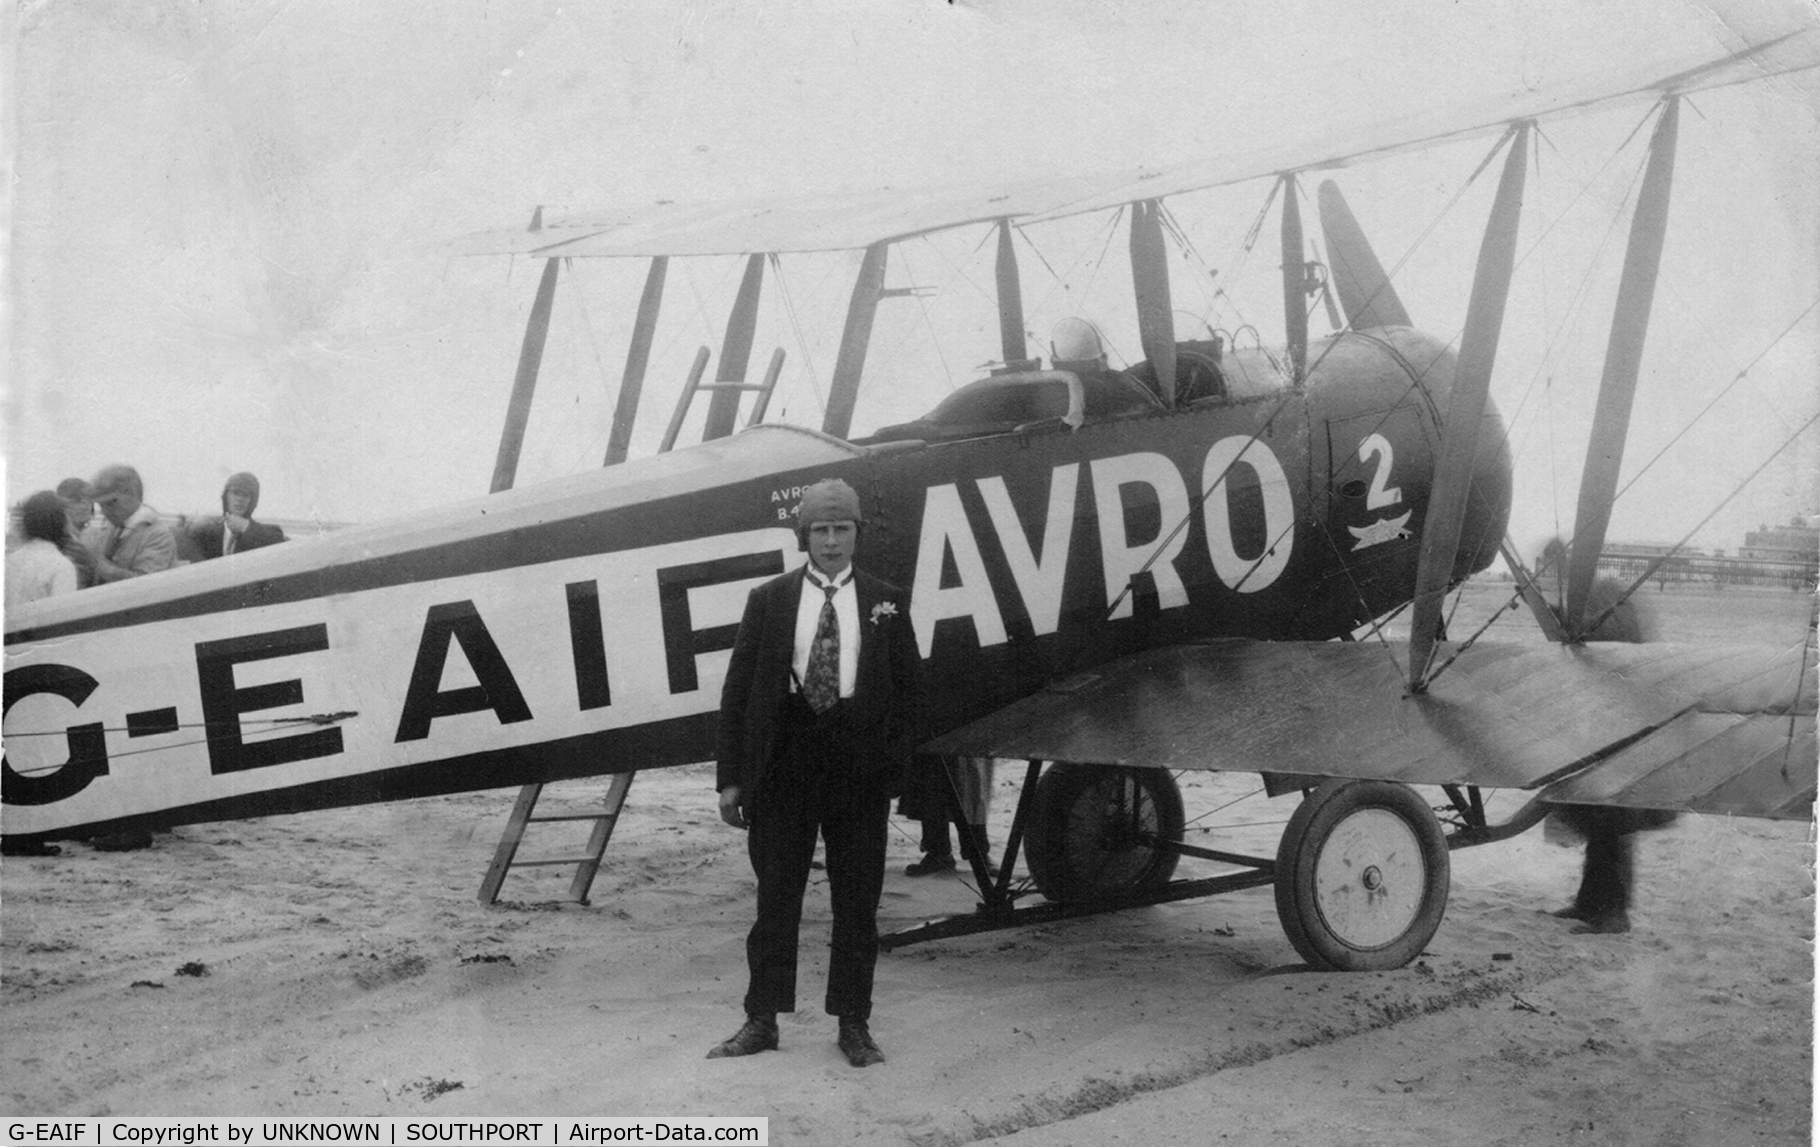 G-EAIF, Avro 536 C/N B4, MY FATHER STANDING ALONGSIDE G-EAIF AVRO- J.C. WHALLEY